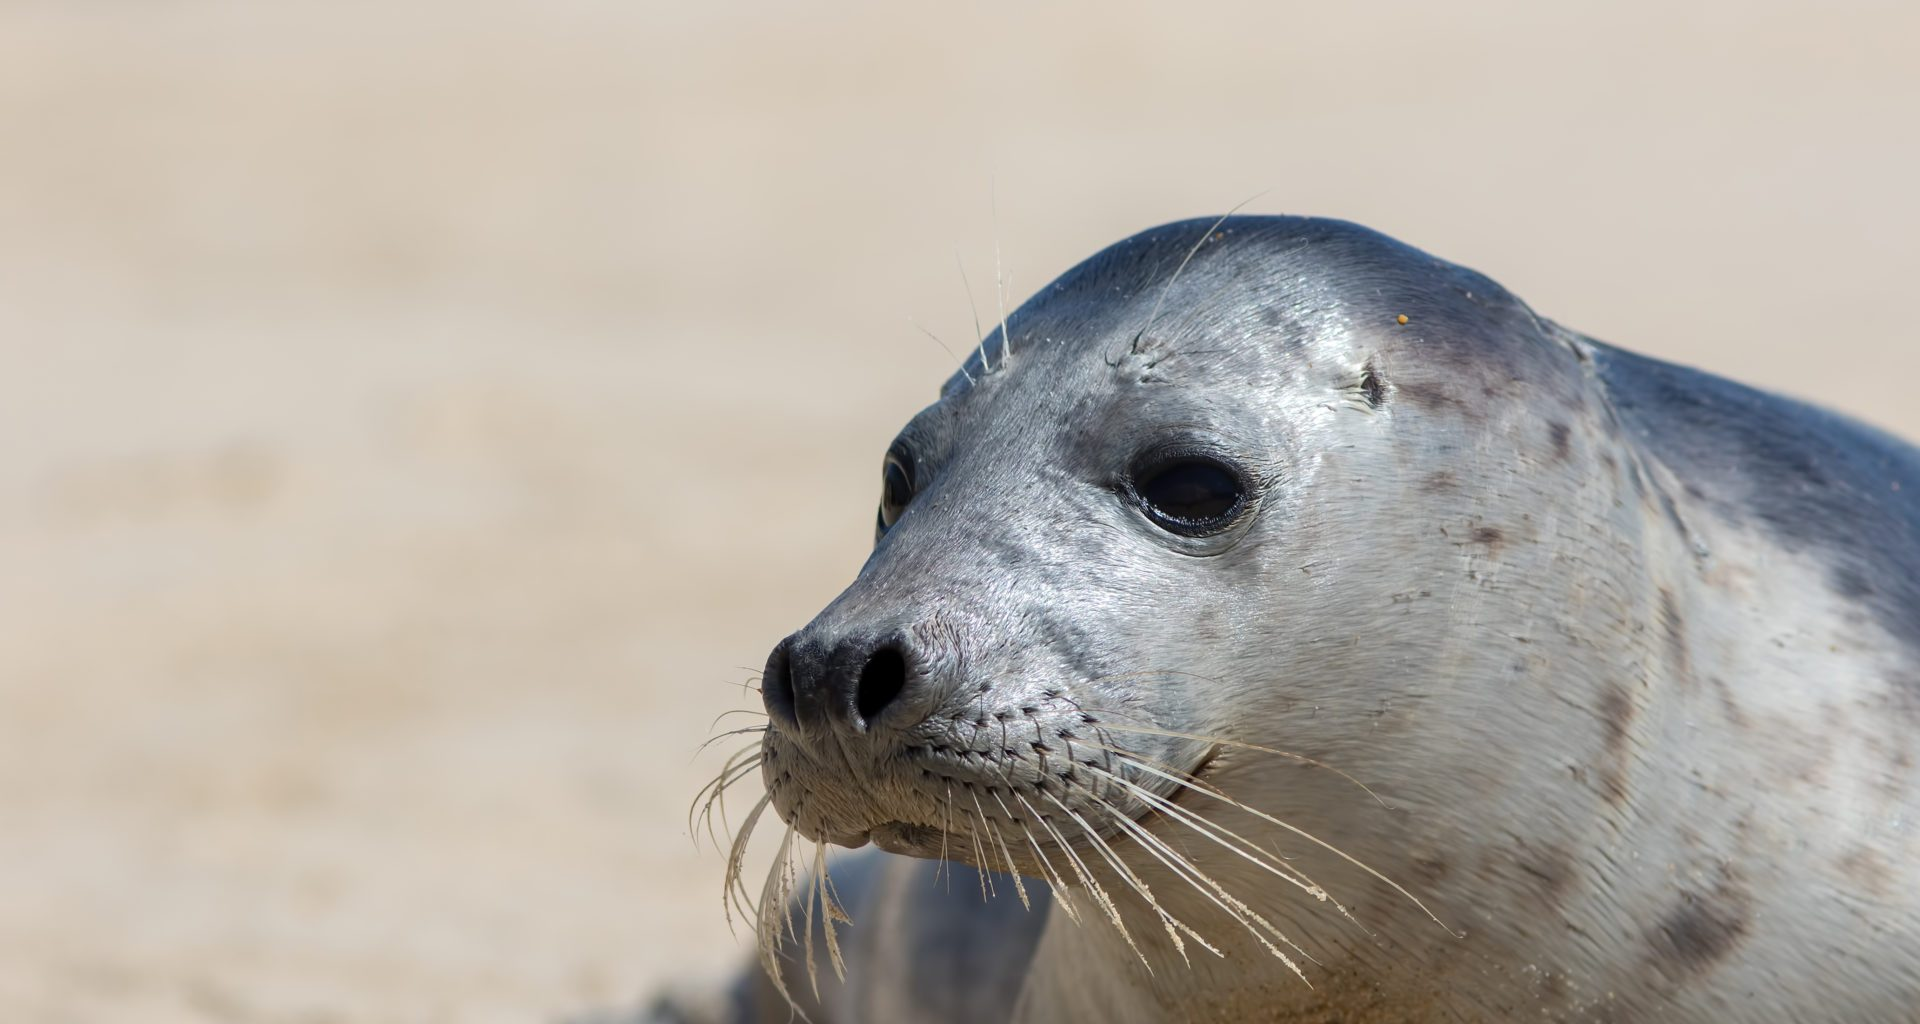 £10,000 reward for information on illegal seal killing after police asked to investigate deaths 8